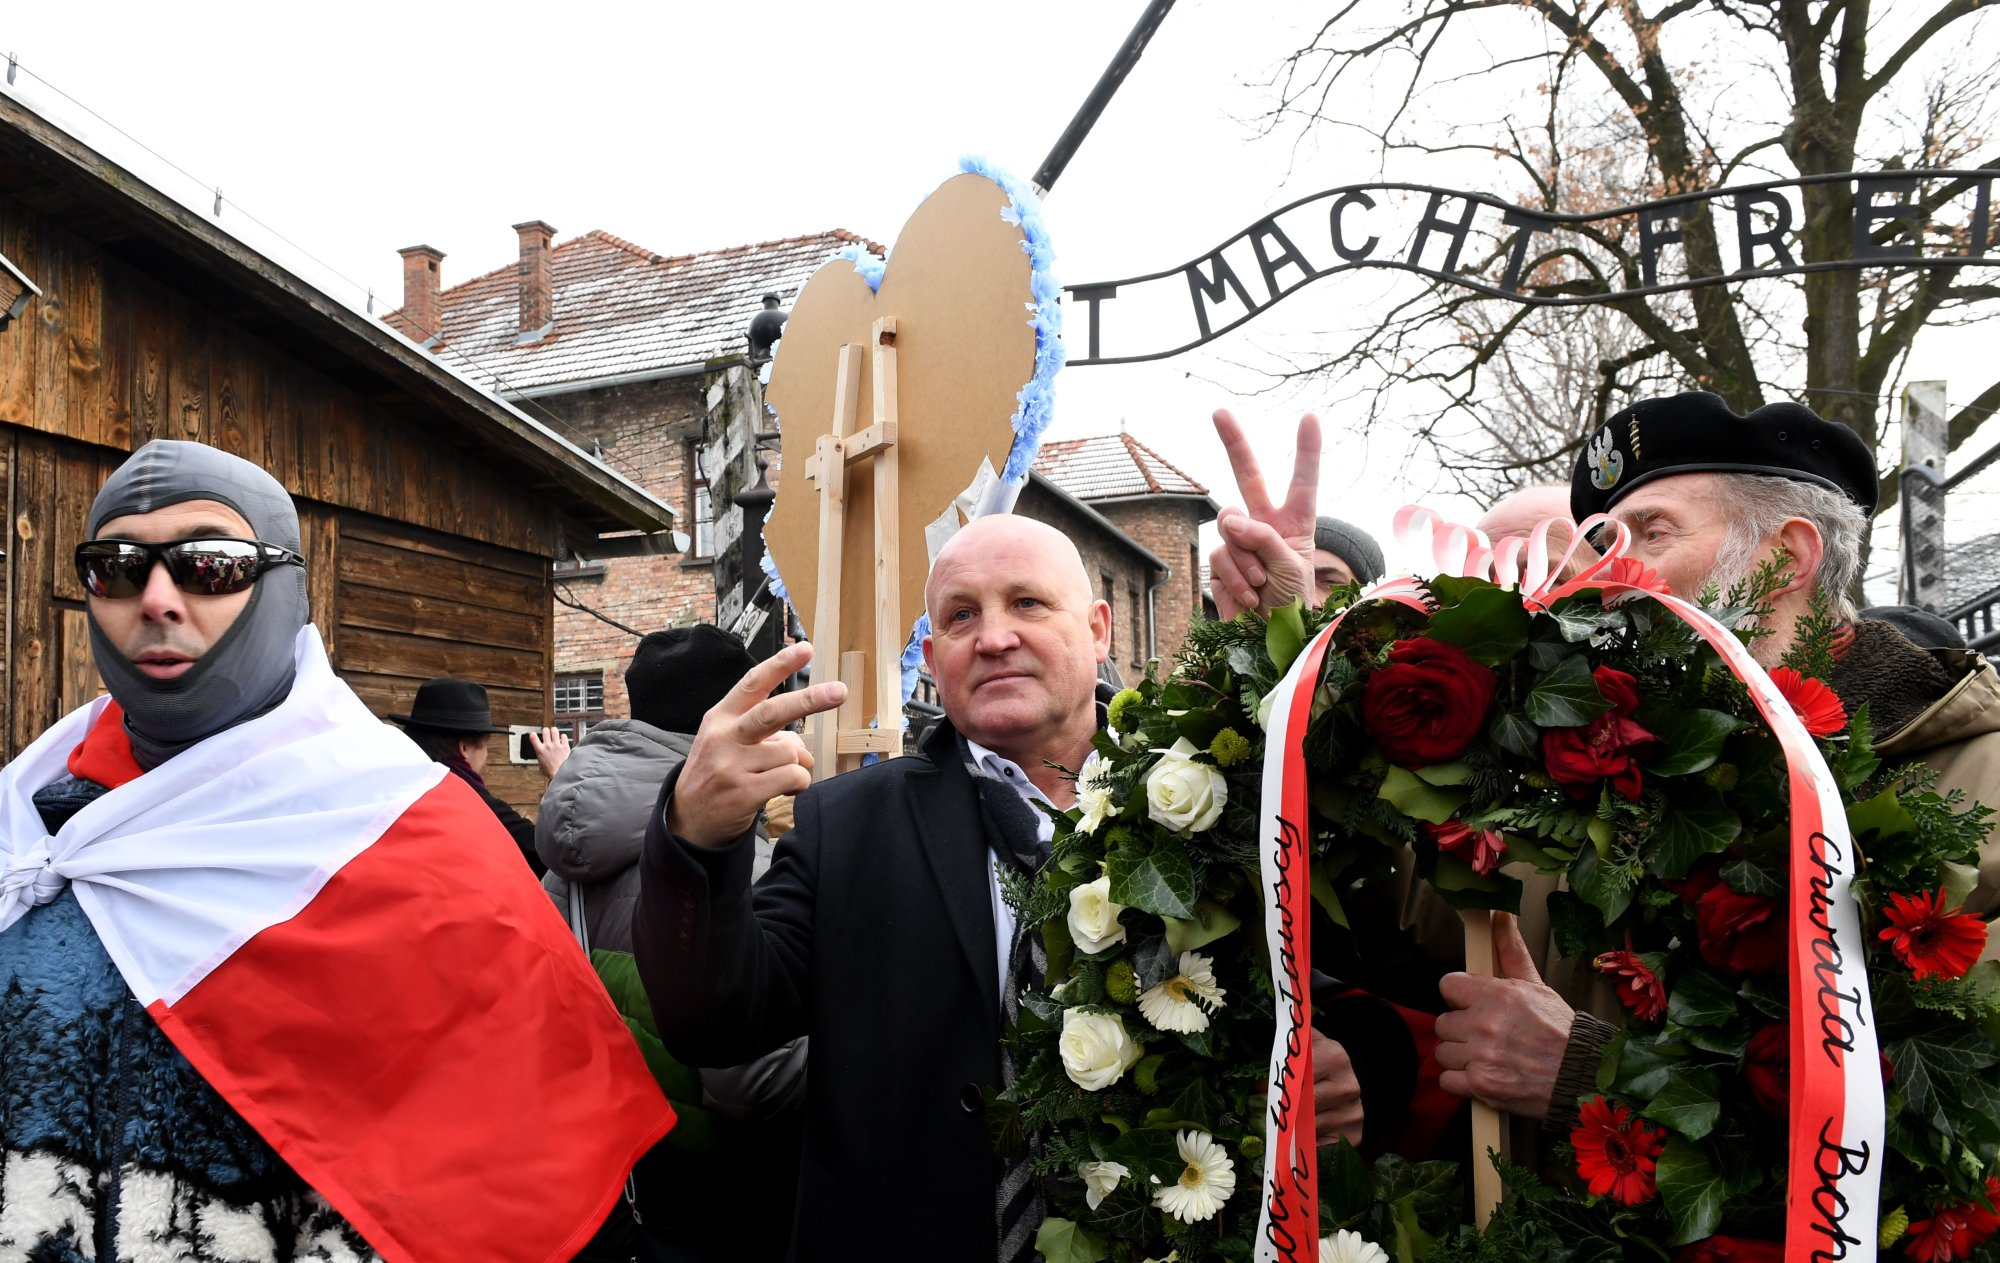 Polish far-right activist Piotr Rybak (C) and supporters gather at the main gate to the former German Nazi death camp Auschwitz-Birkenau, in Oswiecim, Poland, on January 27, 2019. - Rybak protests against the Polish government for remembering only the Jewish prisoners but not the Polish victims. (Photo by Janek SKARZYNSKI / AFP)        (Photo credit should read JANEK SKARZYNSKI/AFP/Getty Images)